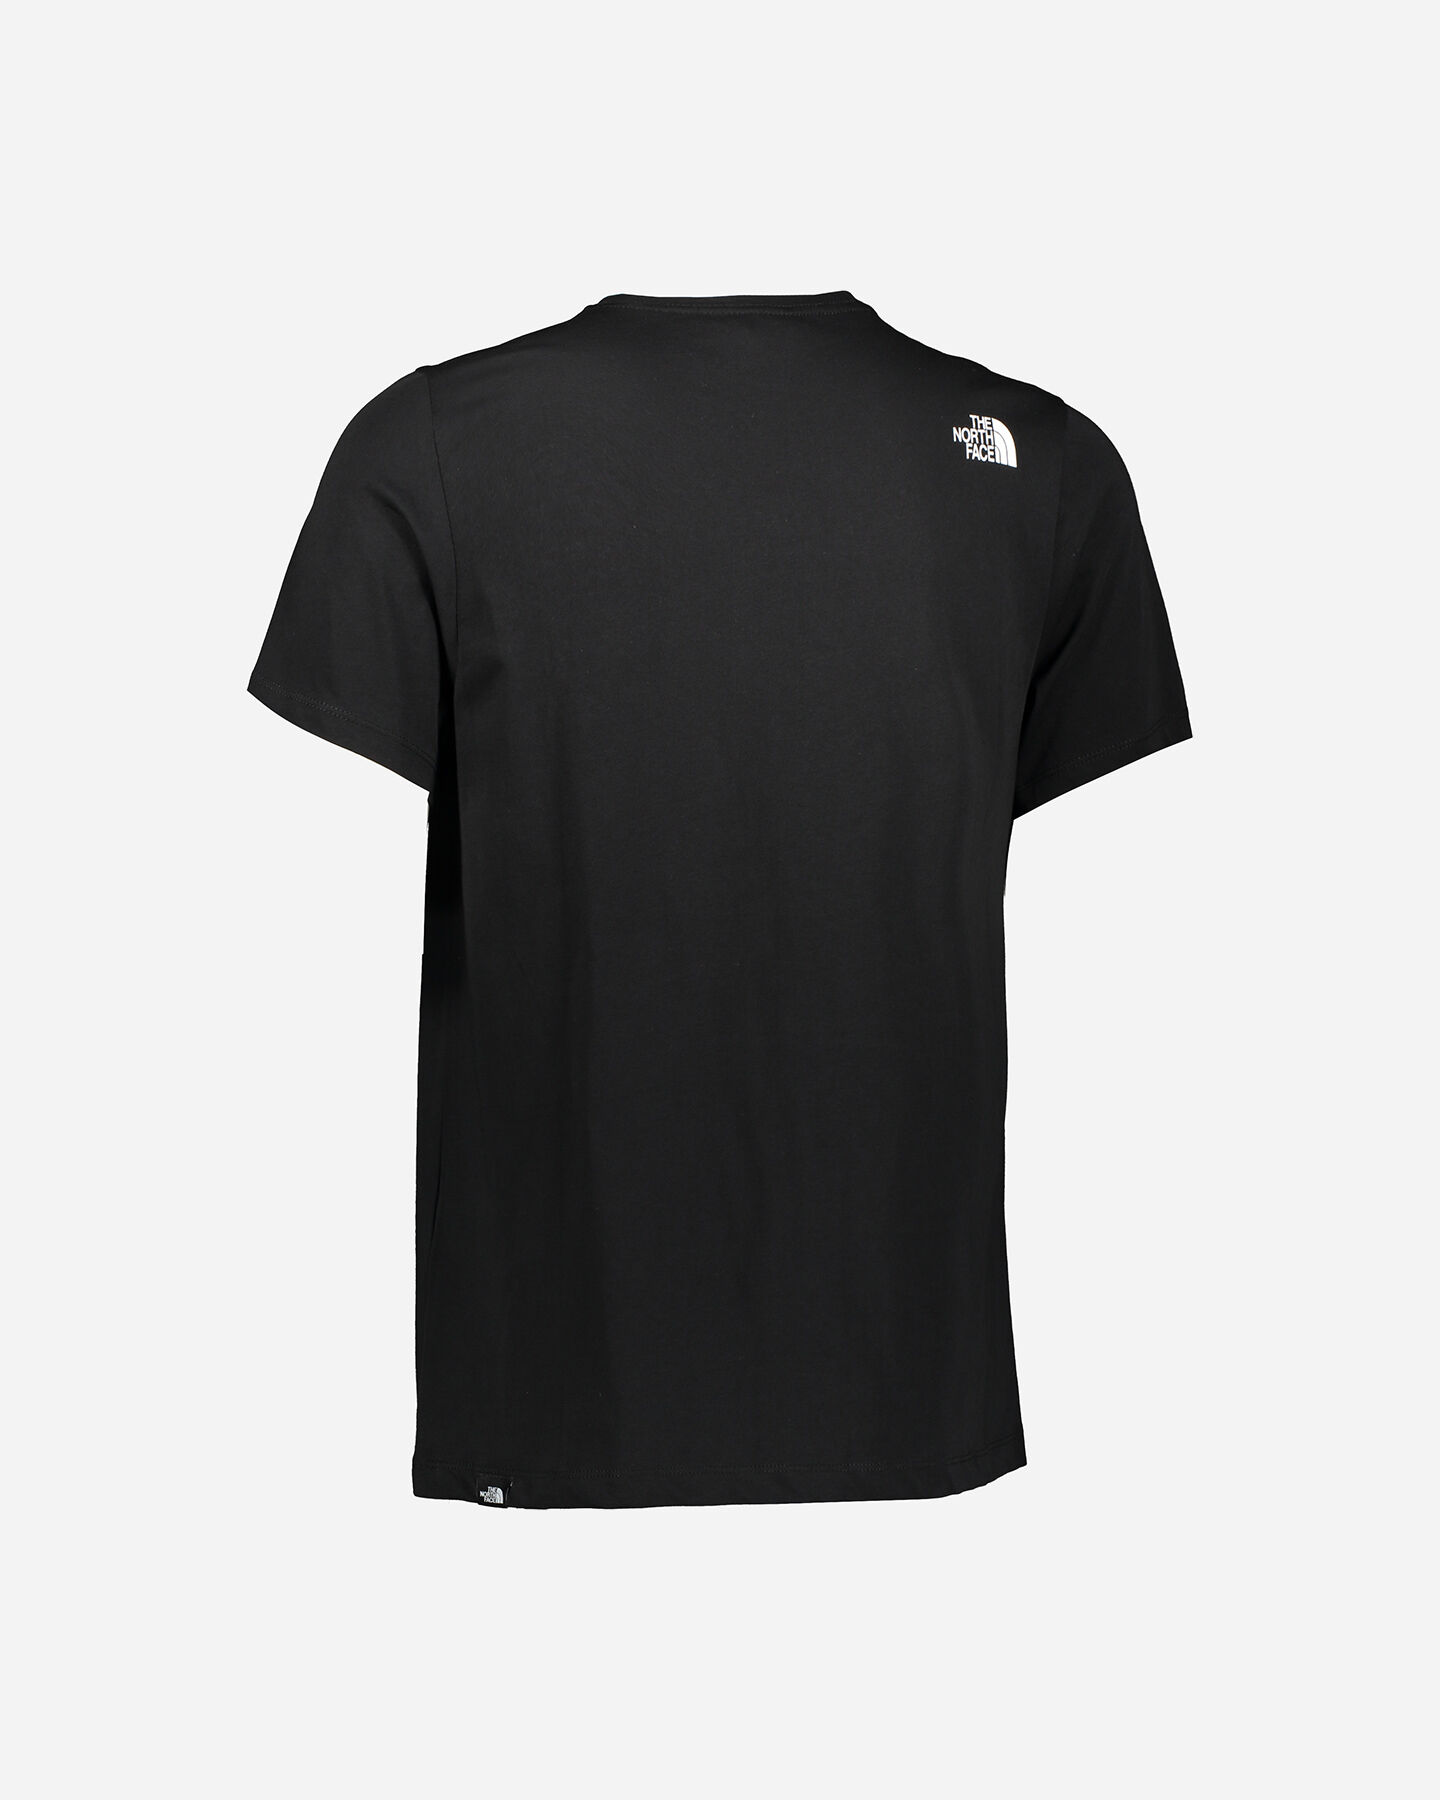 T-Shirt THE NORTH FACE LIFESTYLE LOGO M S5245436 scatto 1